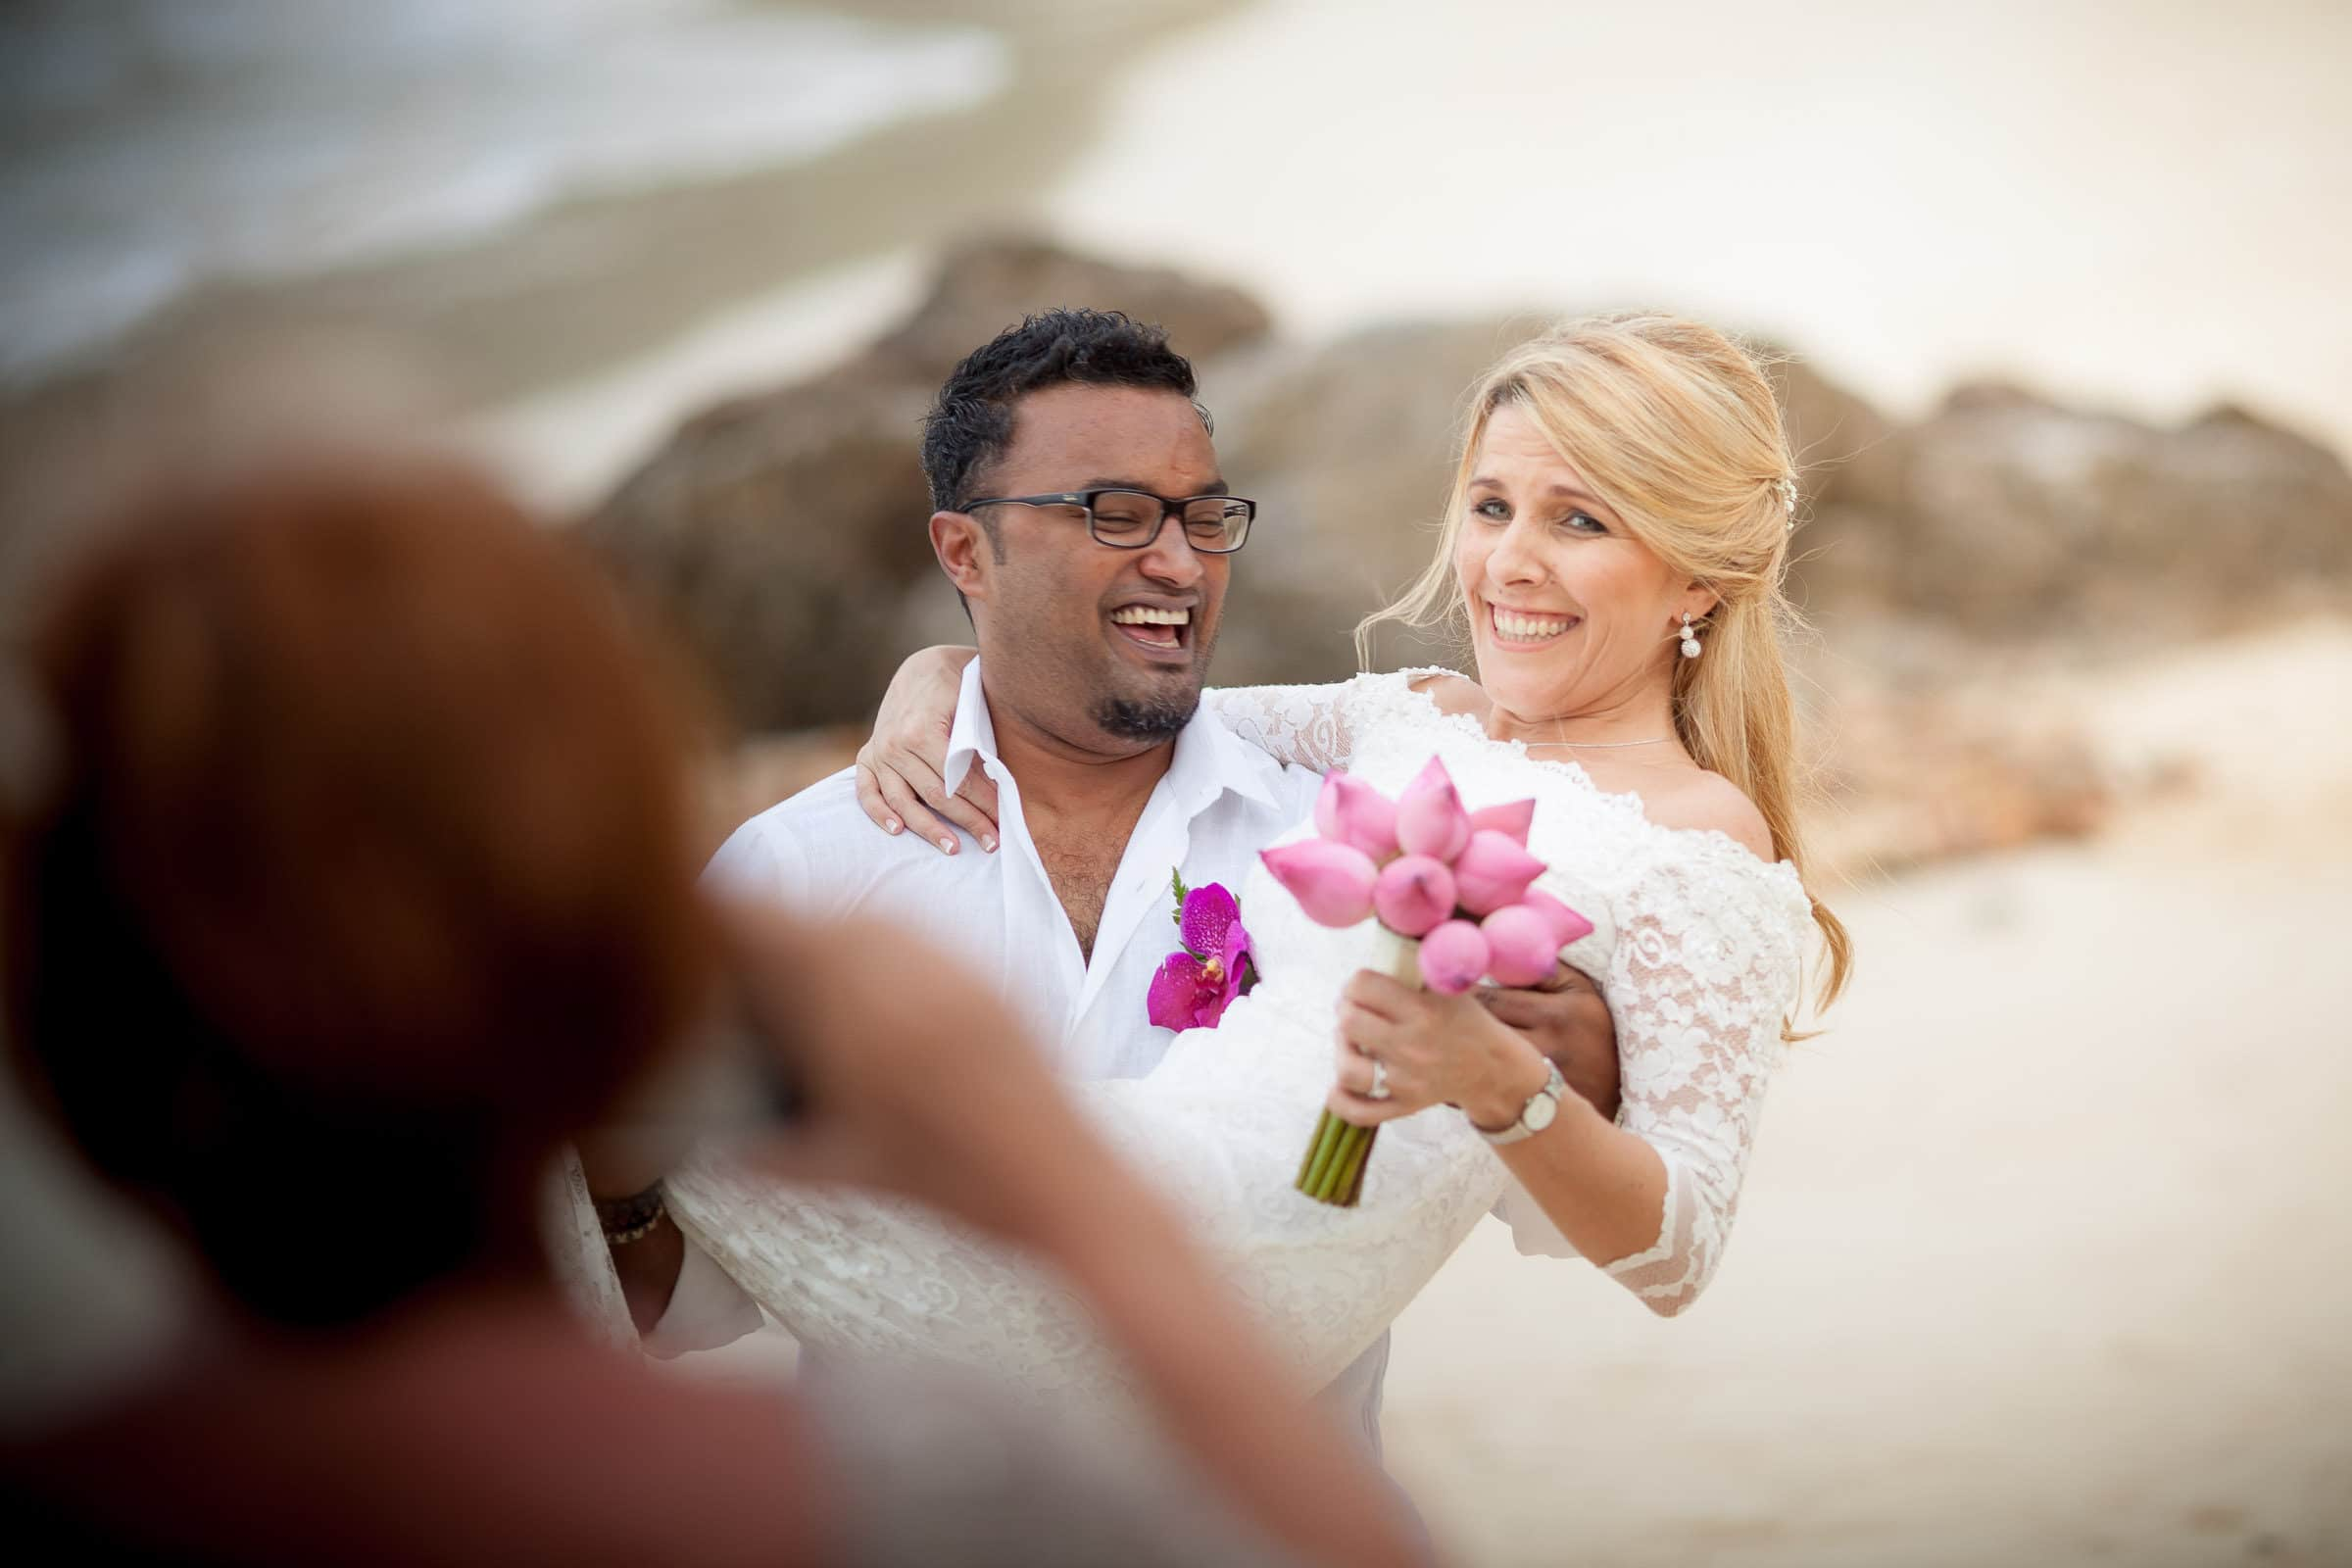 Wedding photographer shoot of couple in thailand